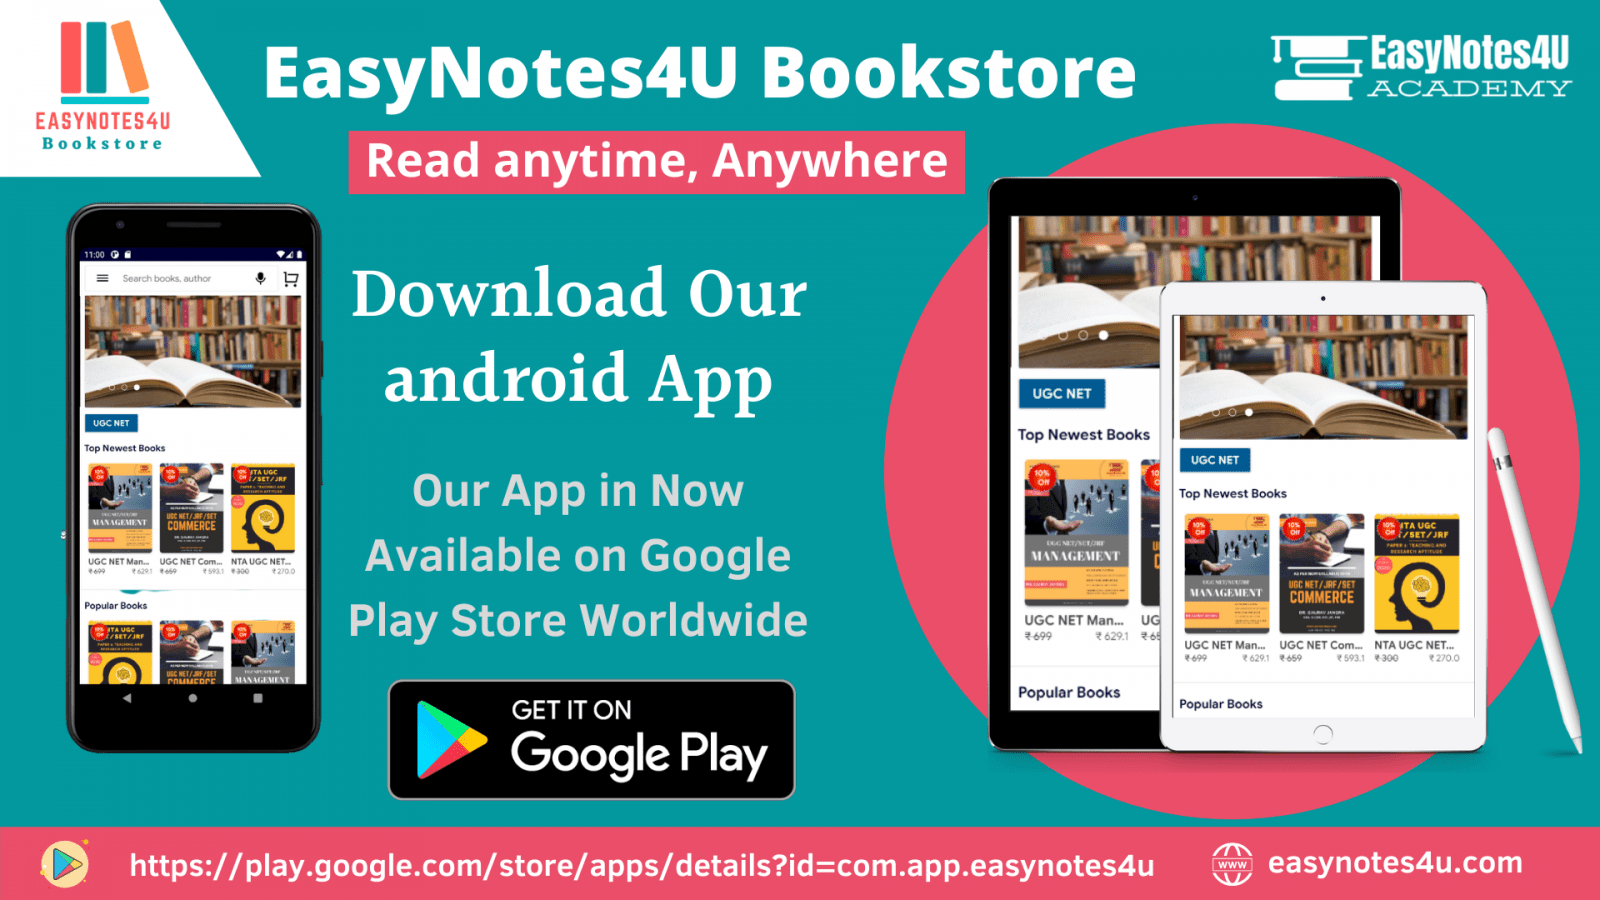 Download Our New Android App EasyNotes4U Bookstore